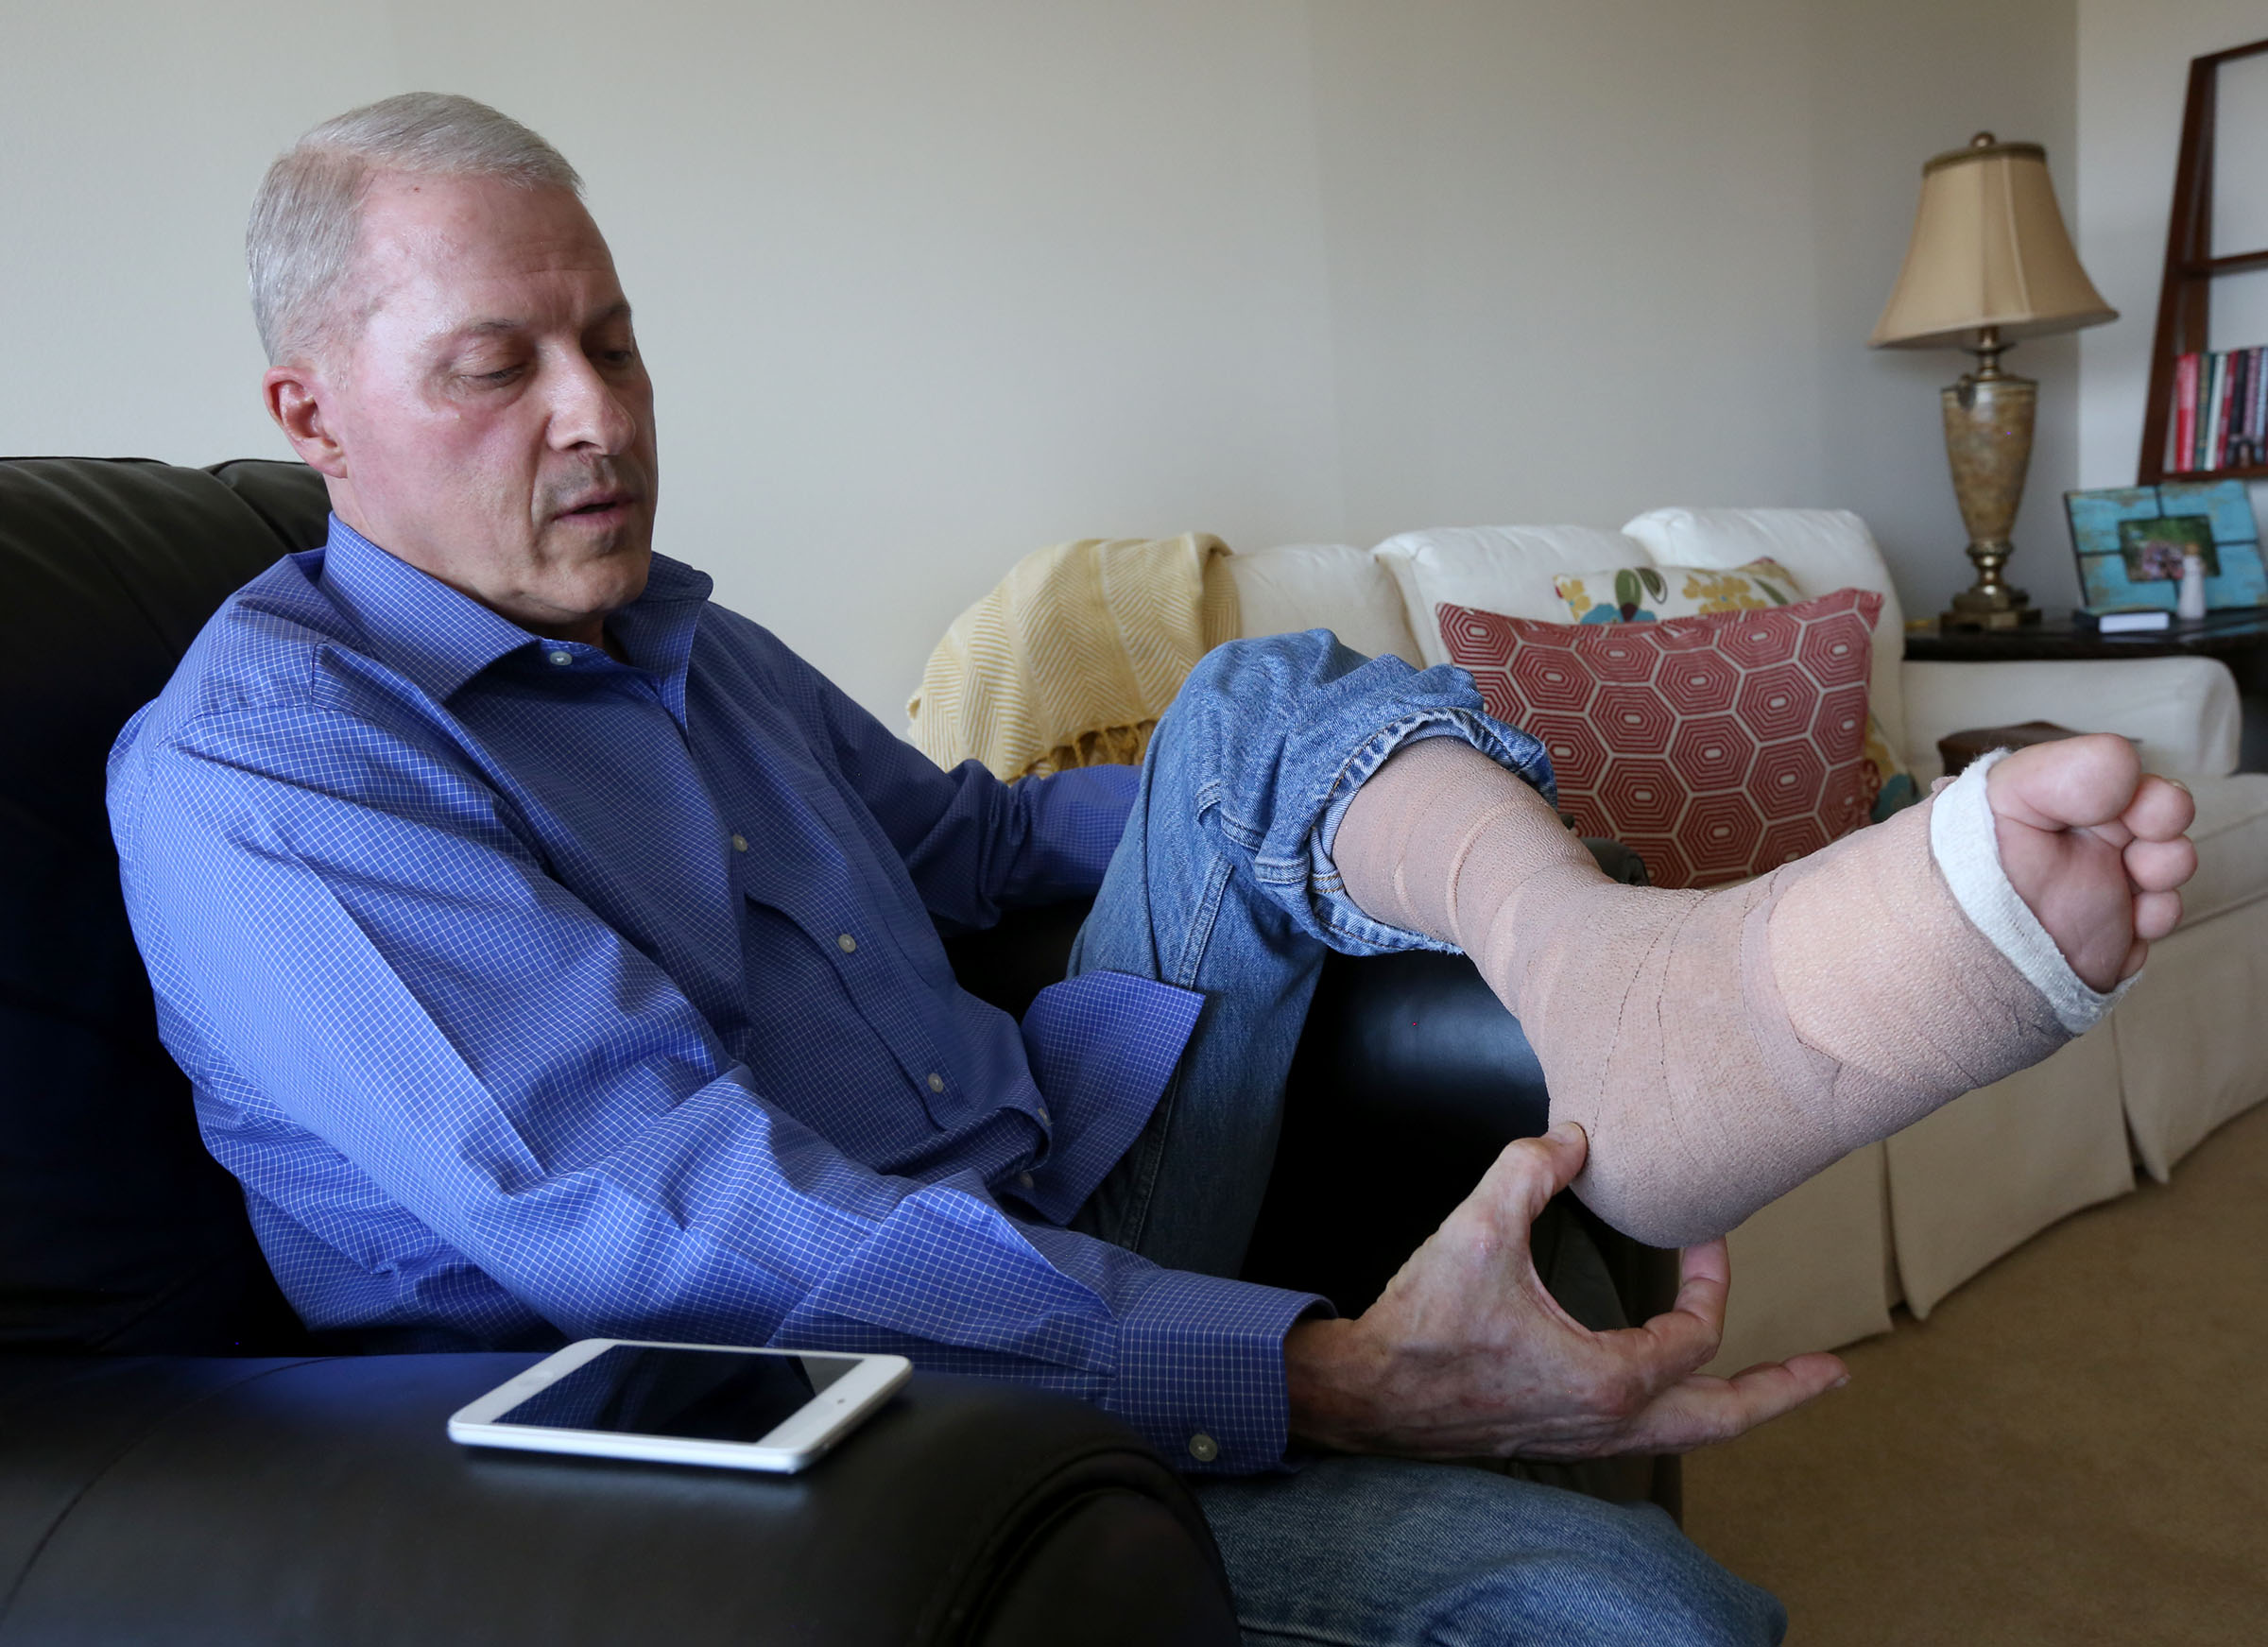 Richard Norby talks about his recovery from the March terrorist attack on the Brussels airport at home in Salt Lake City on Wednesday, July 27, 2016. Norby was in Brussels serving a mission for the Church of Jesus Christ of Latter Day Saints. In addition to shrapnel wounds and burns, Norby lost a significant amount of soft tissue on his leg and broke it in two places.